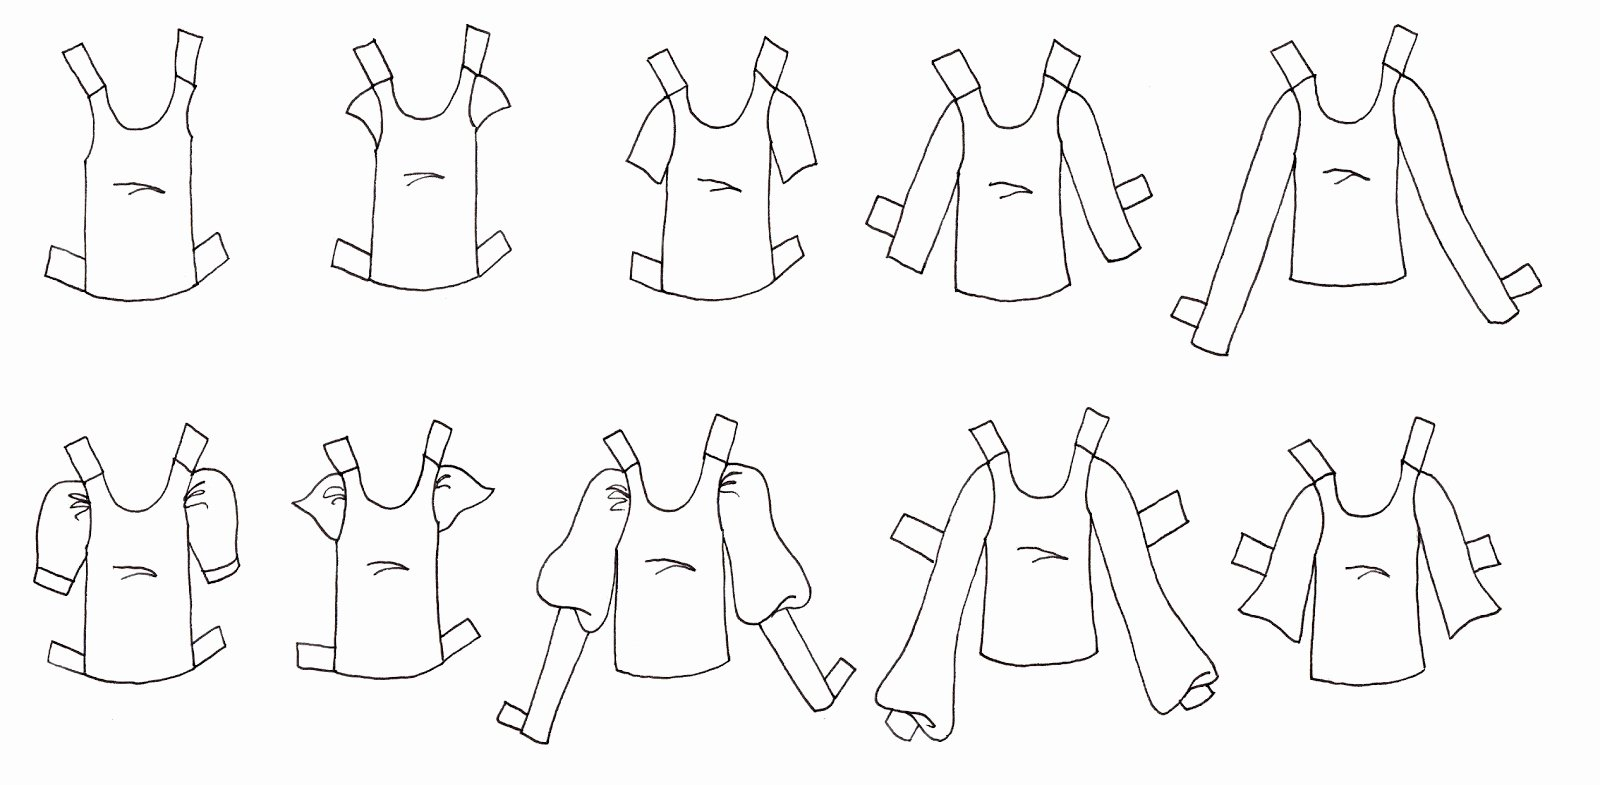 Paper Doll Clothing Template Best Of Paper Doll School Creating Versatile Clothing Templates